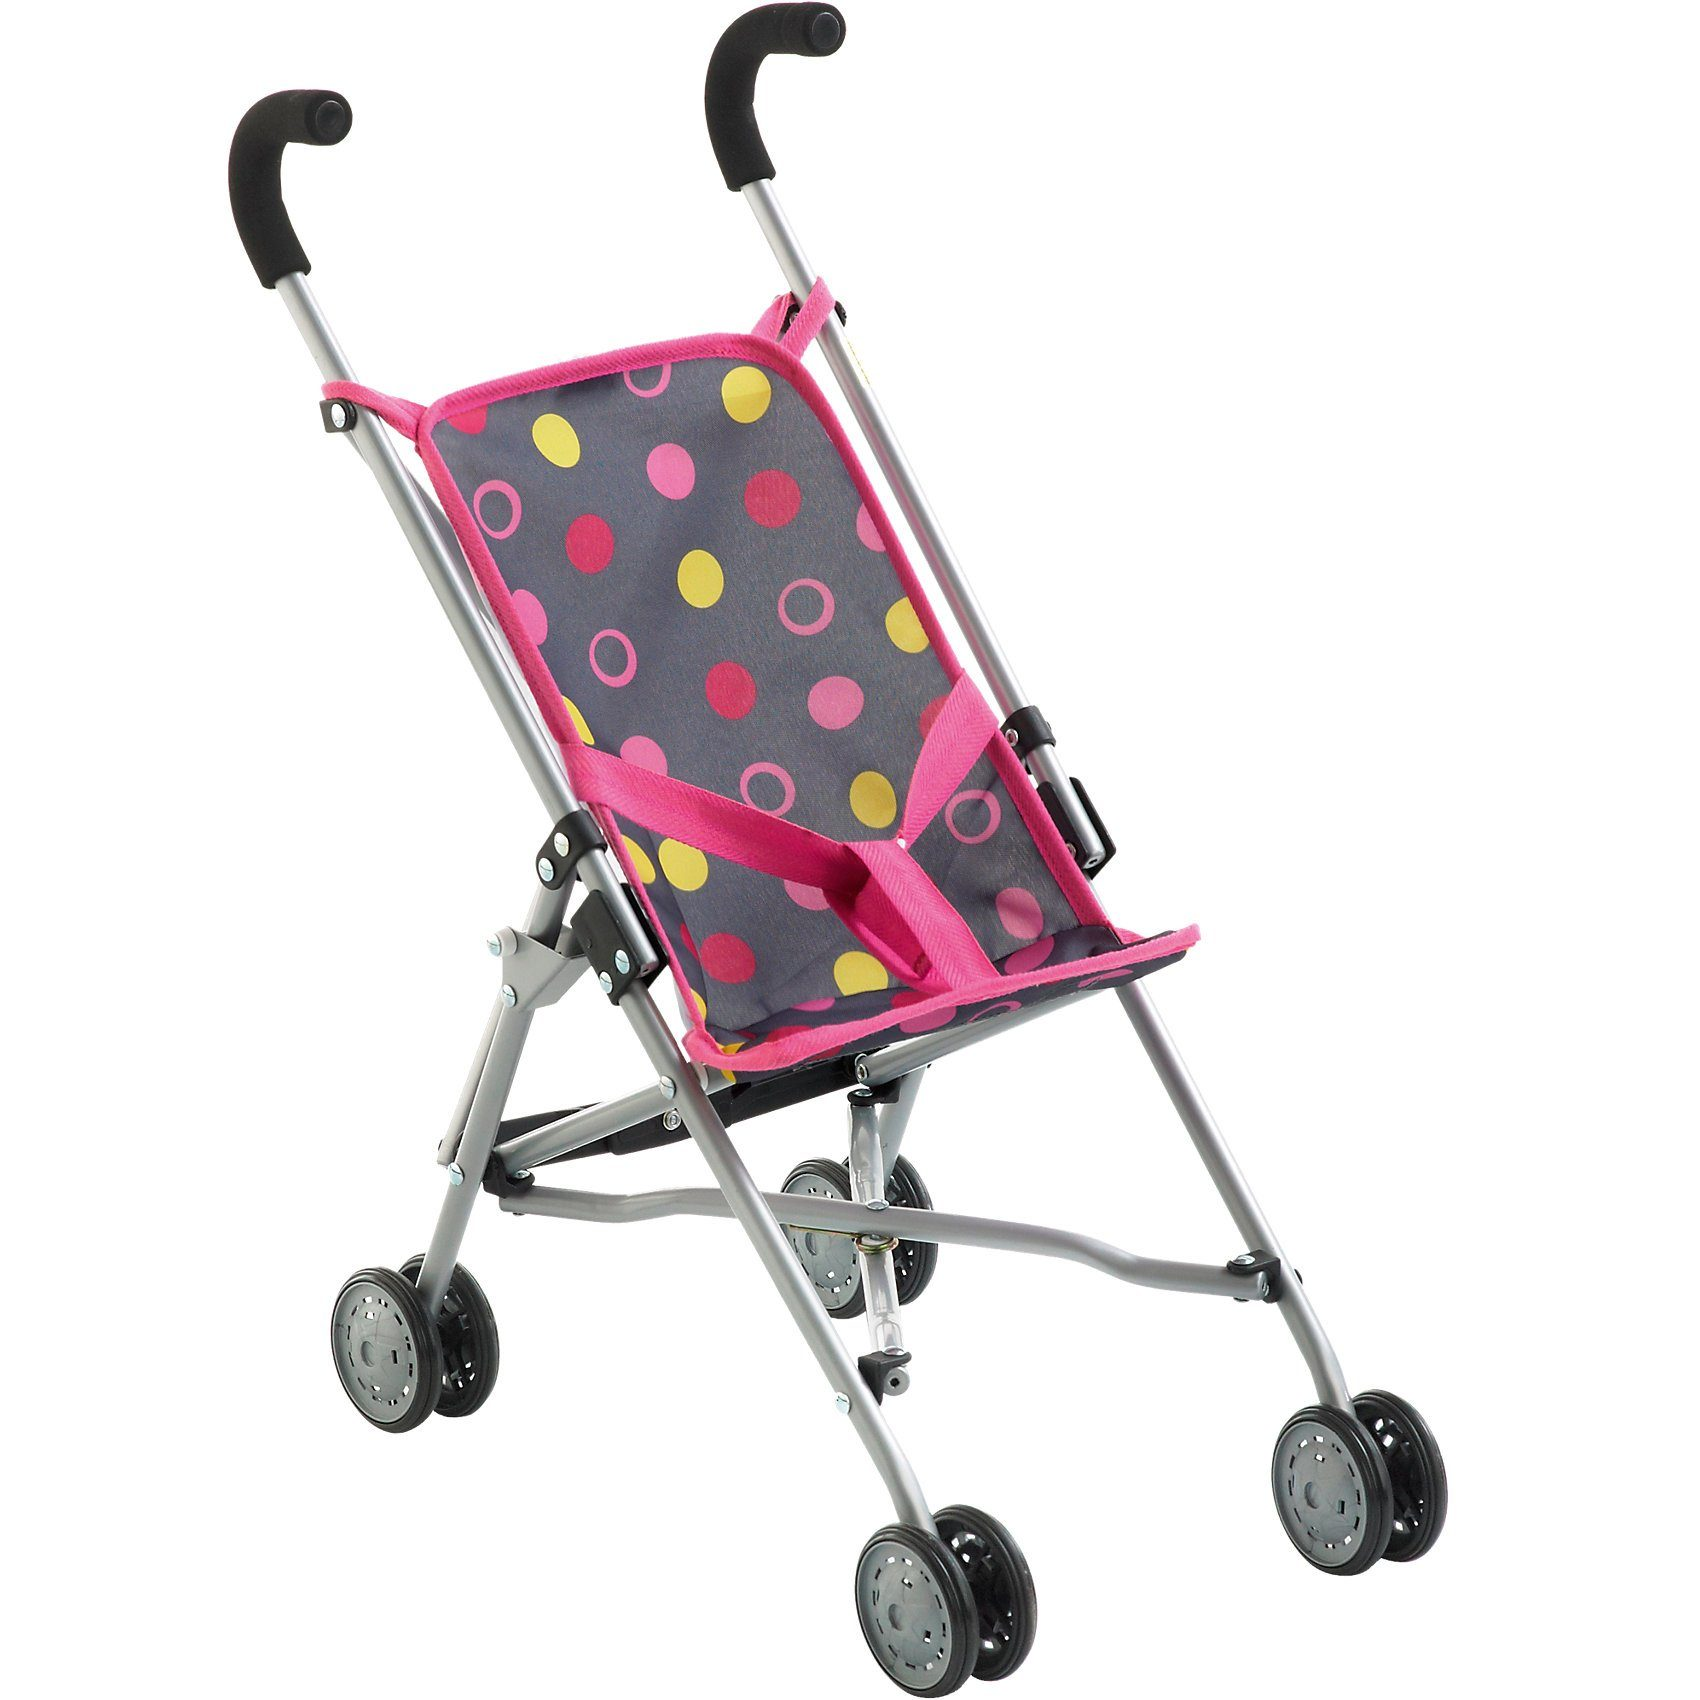 CHIC 2000 Mini Puppen-Buggy Roma, Funny Pink